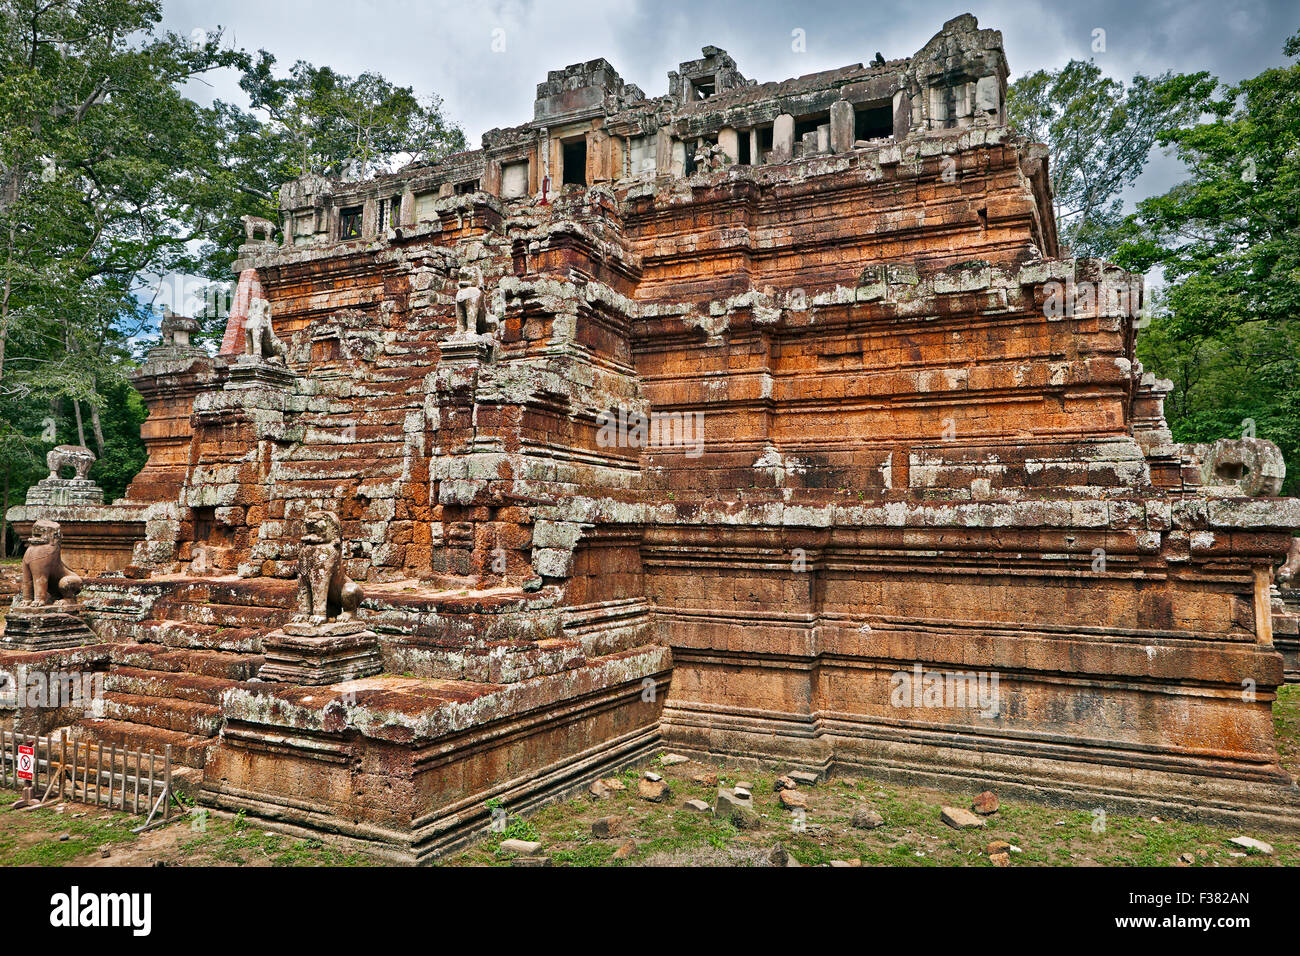 Phimeanakas temple. Angkor Archaeological Park, Siem Reap Province, Cambodia. - Stock Image